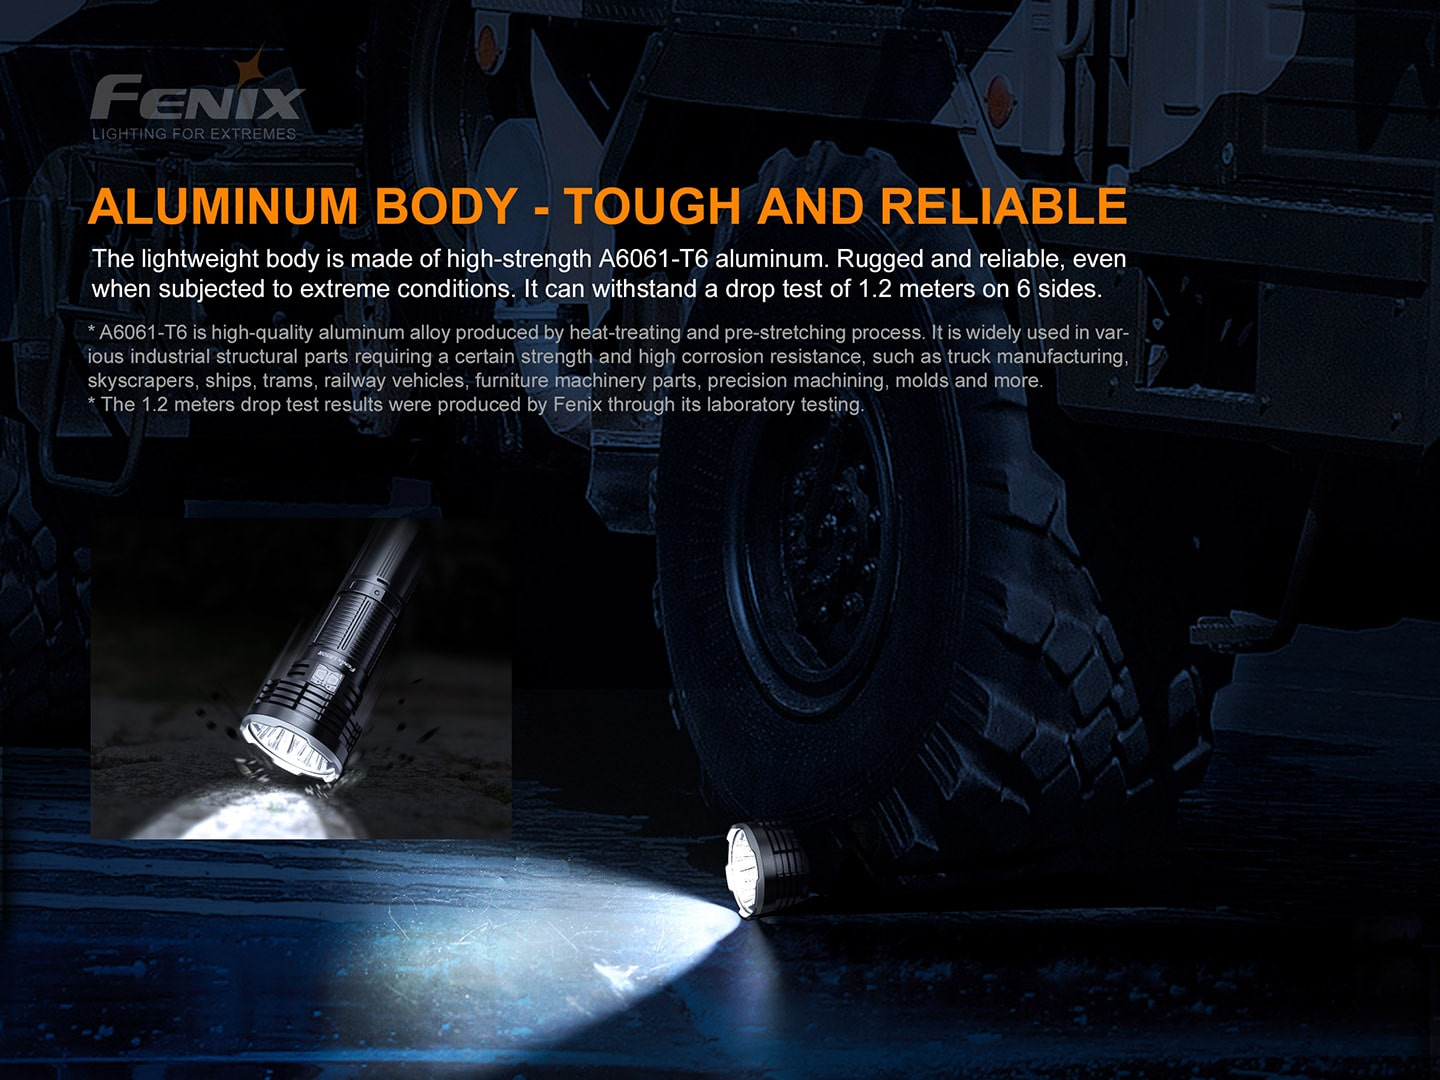 Fenix LR50R Extremely powerful bright  searchlight for search, rescue, outdoors, law enforcement, camping, jungle trek and photography